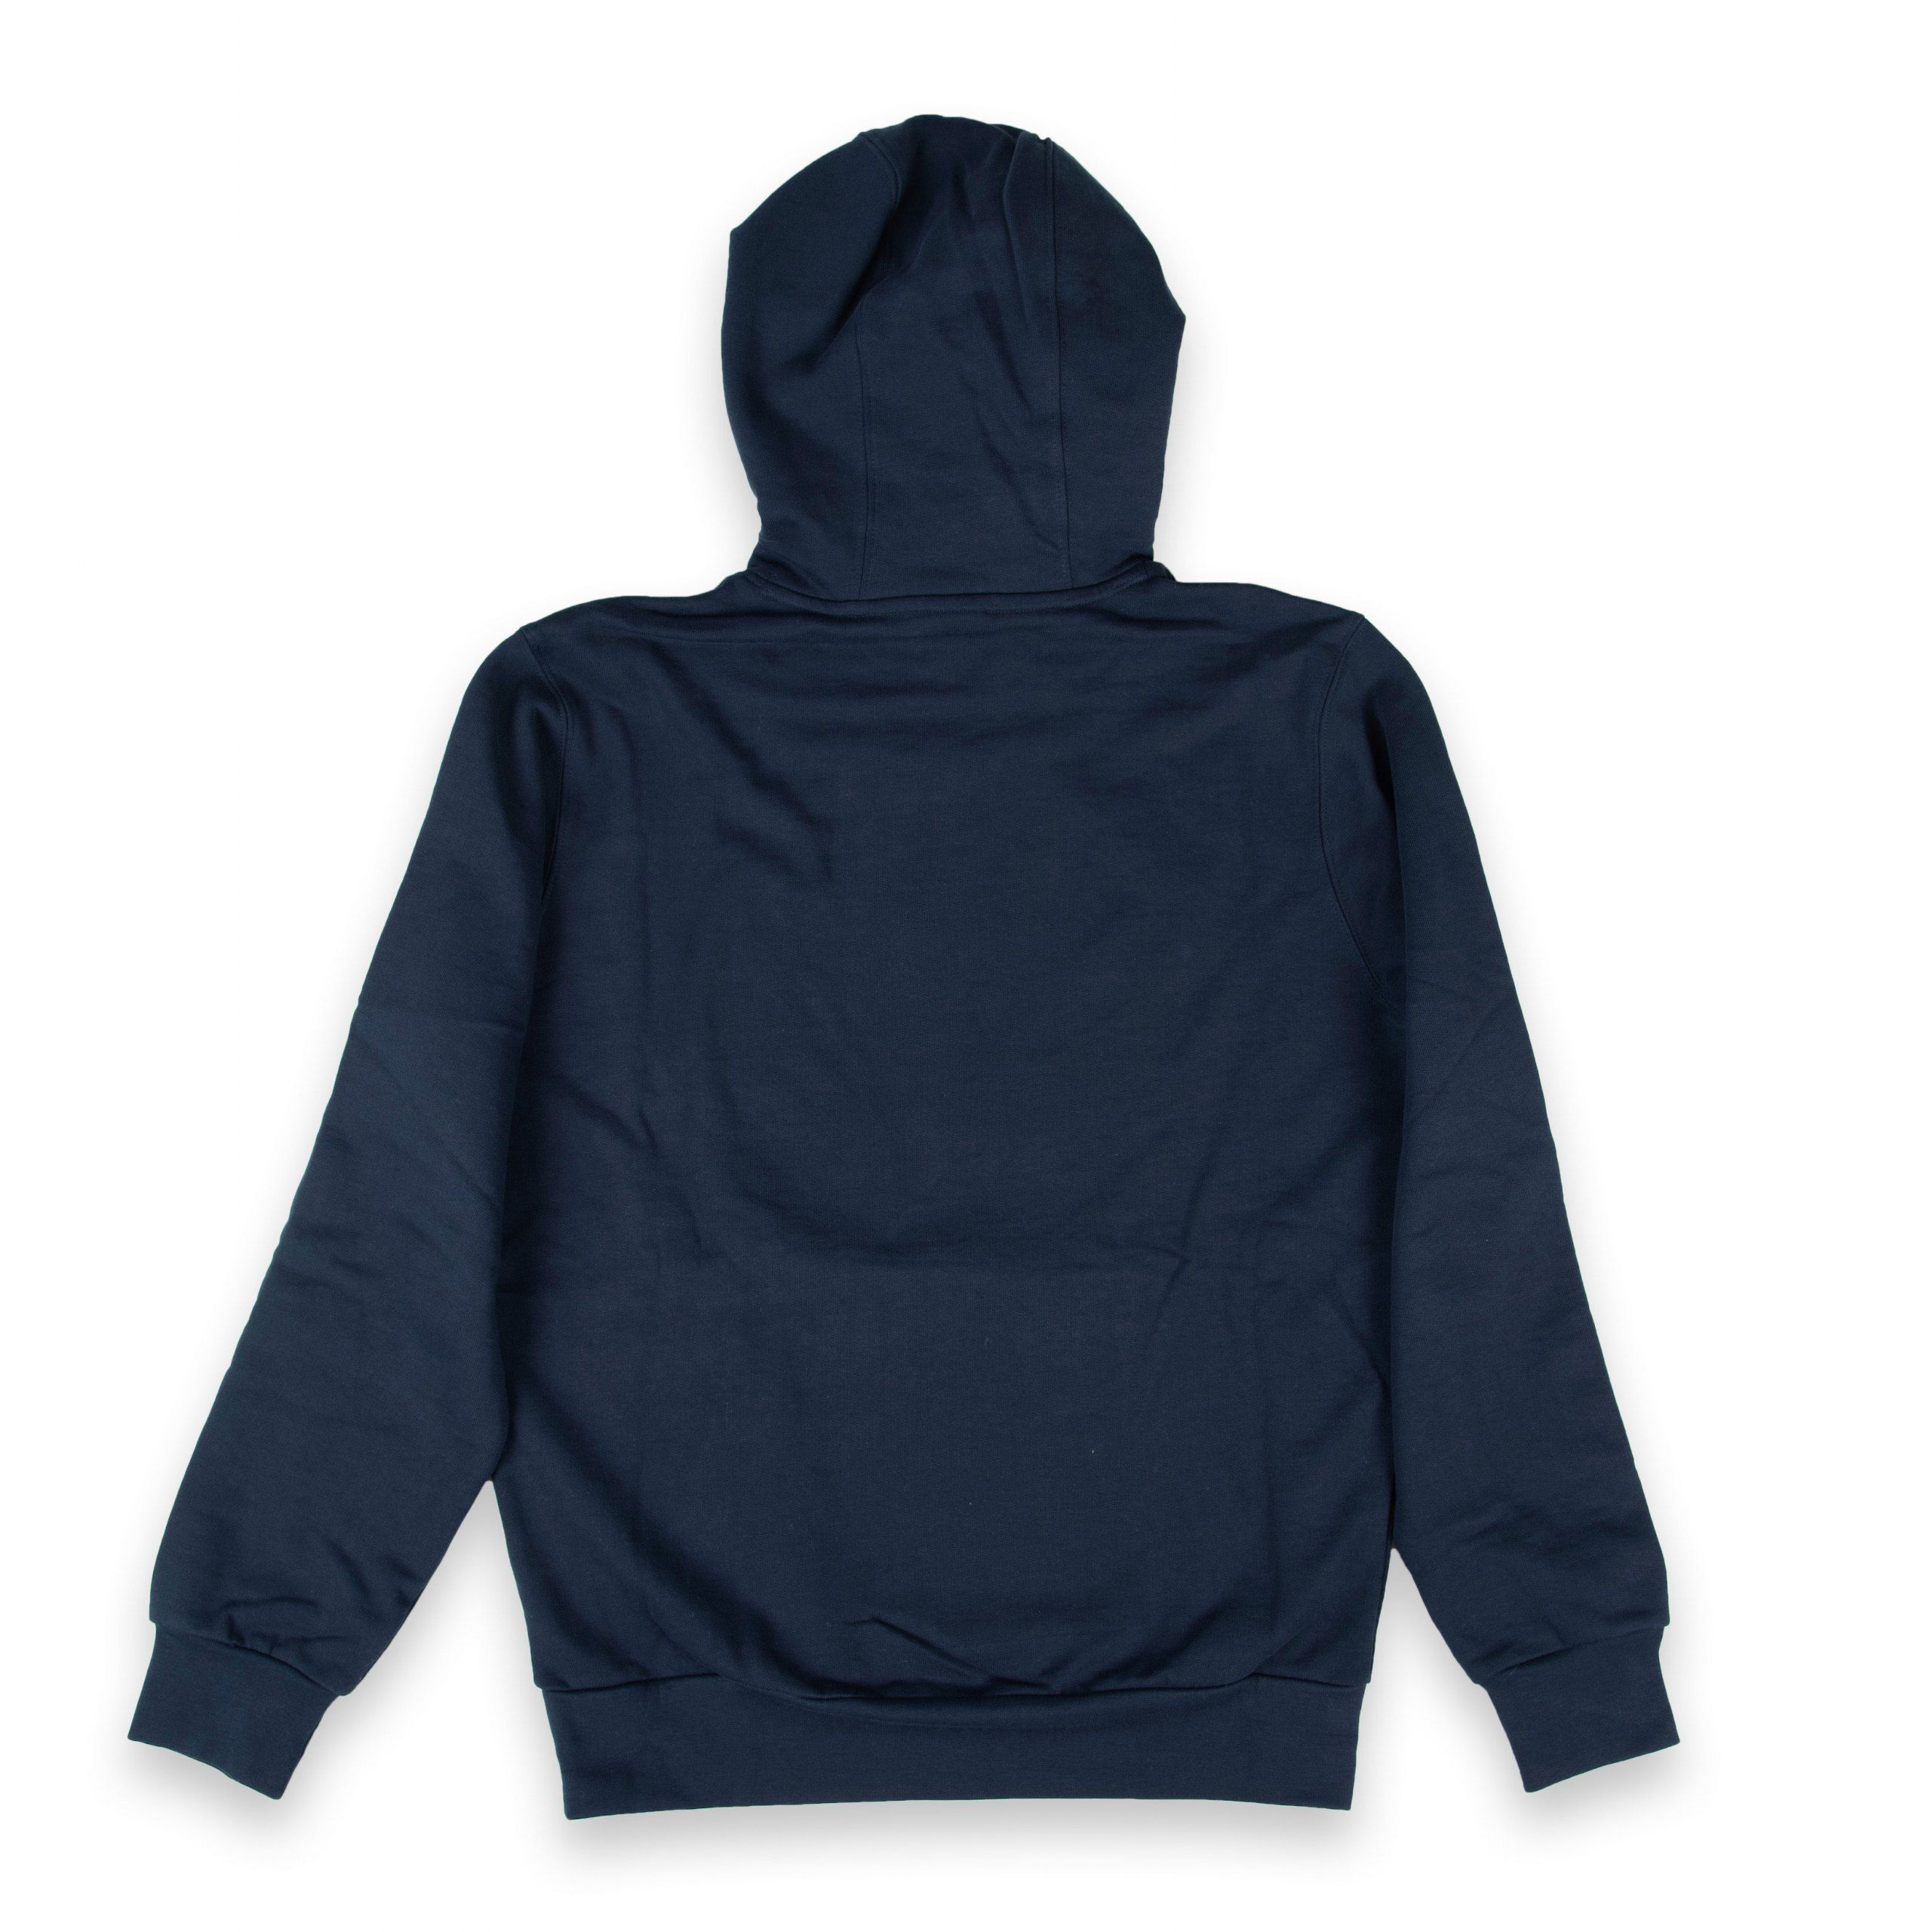 Poloshow North Sails Hooded Sweat Navy Blue 69 1551 000 0802 500 2